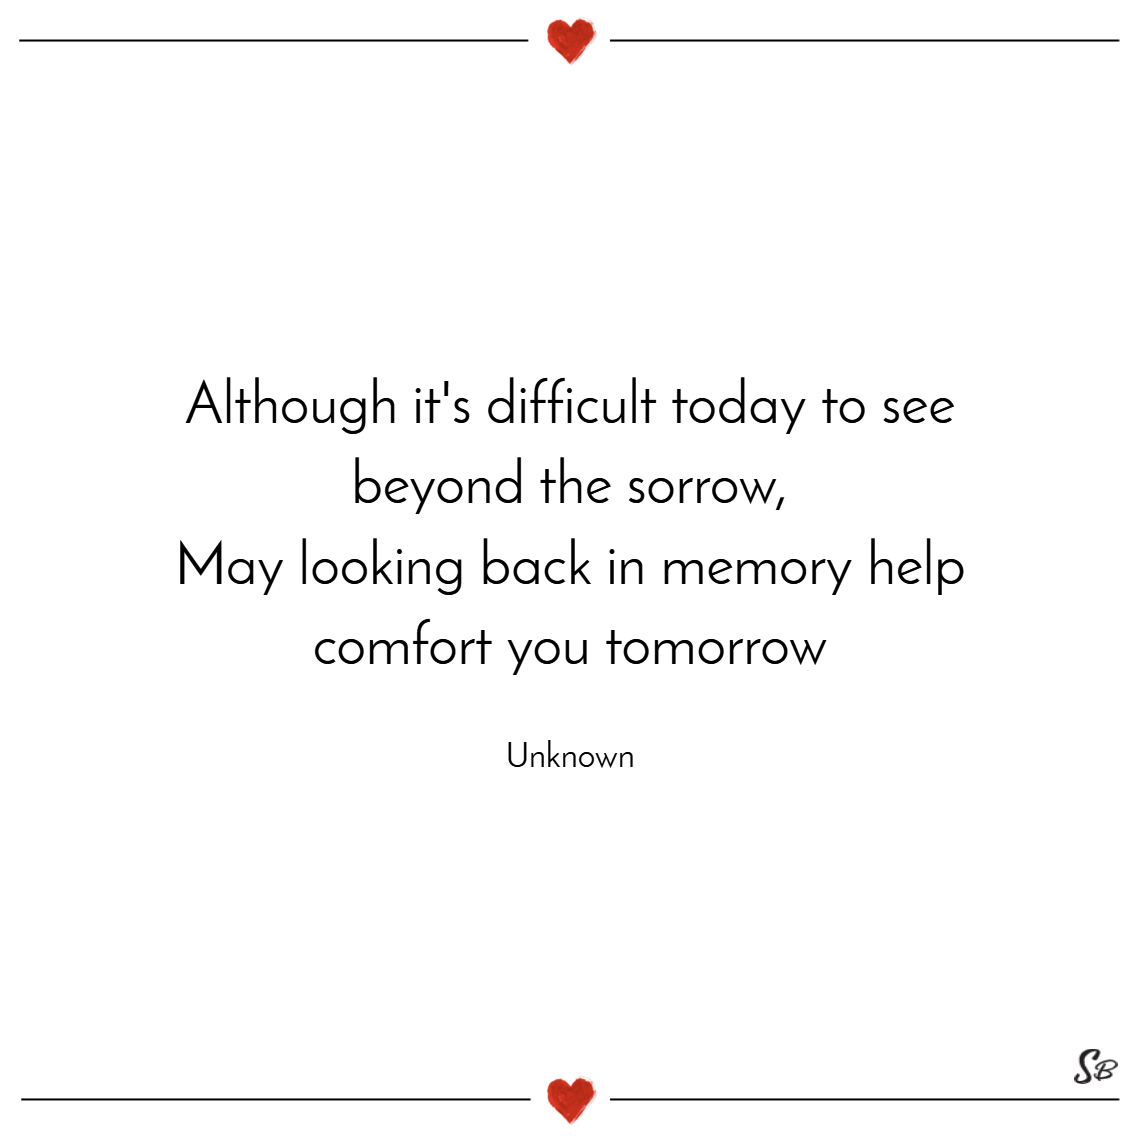 Although it's difficult today to see beyond the sorrow, may looking back in memory help comfort you tomorrow. – unknown